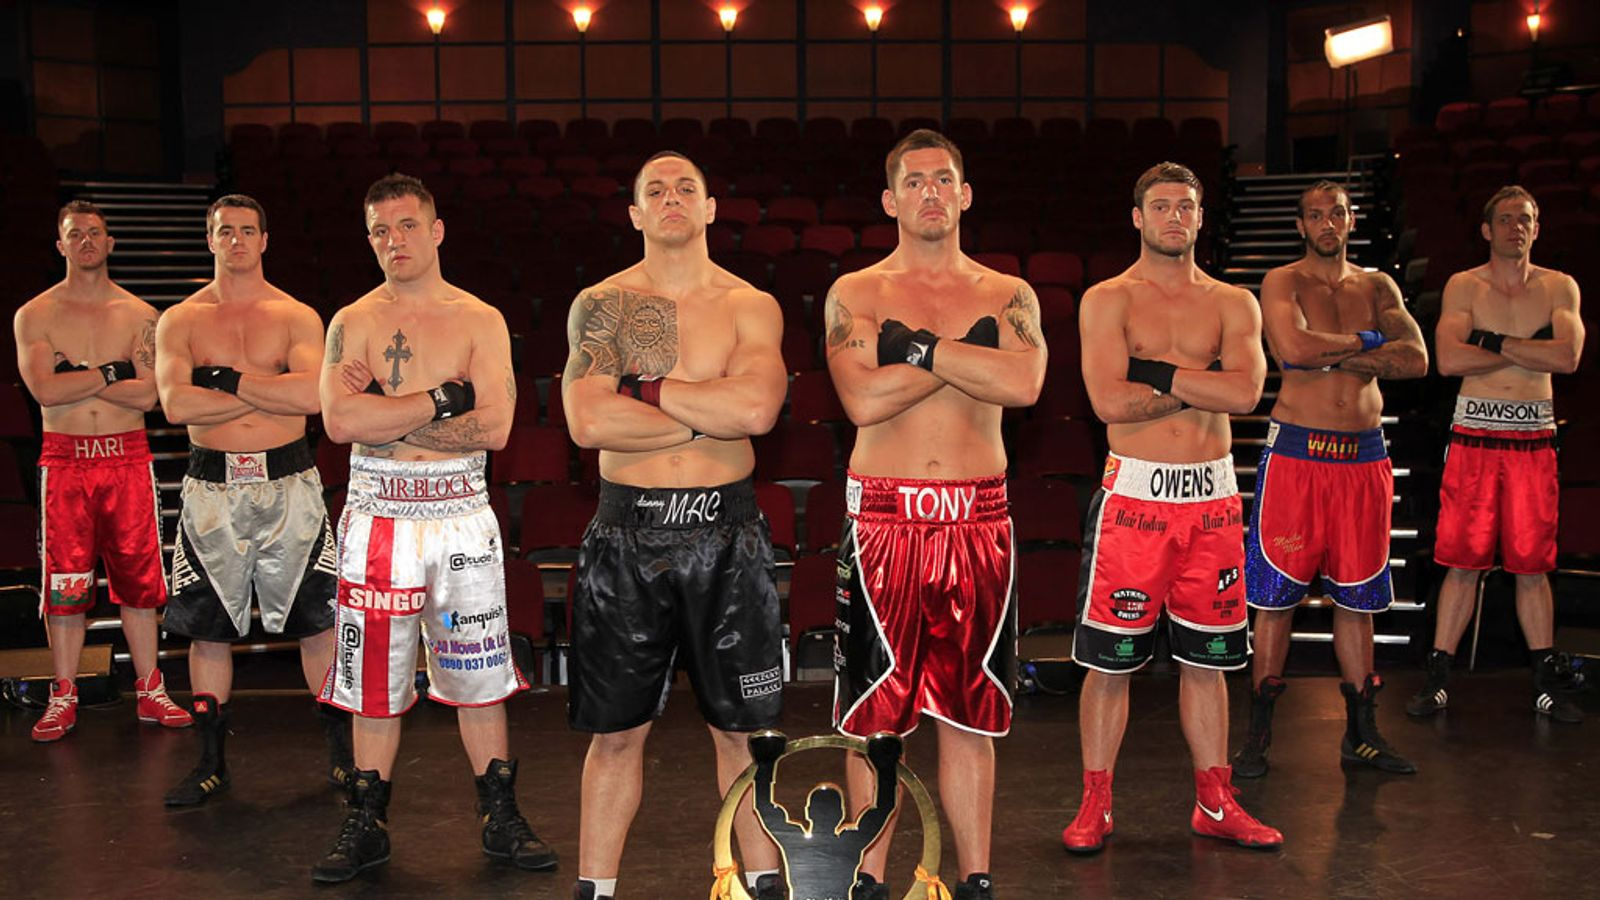 Prizefighter cruiserweights betting odds ig index spread betting charges dropped